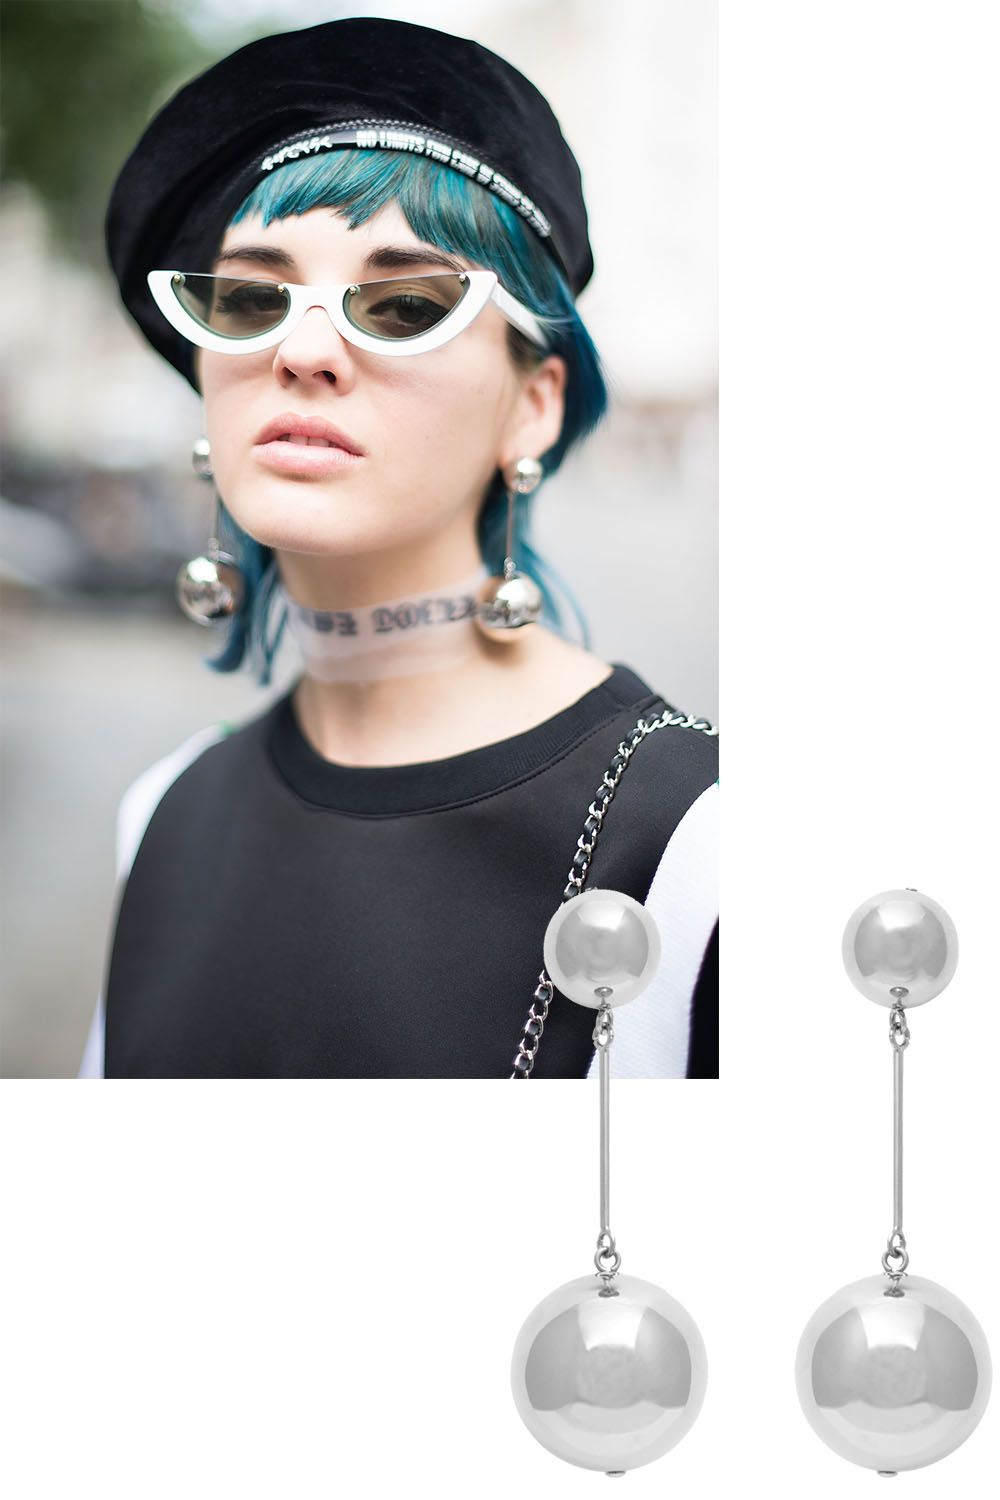 "<p>J.W. Anderson's Fall earring is almost too much fun (almost).<br></p><p><em>J.W. Anderson earrings, $405 (pre-order), <strong><a href=""https://shop.harpersbazaar.com/j/jw-anderson/pearl-drop-earrings-9703.html"" target=""_blank"">shopBAZAAR.com</a></strong>. </em></p>"